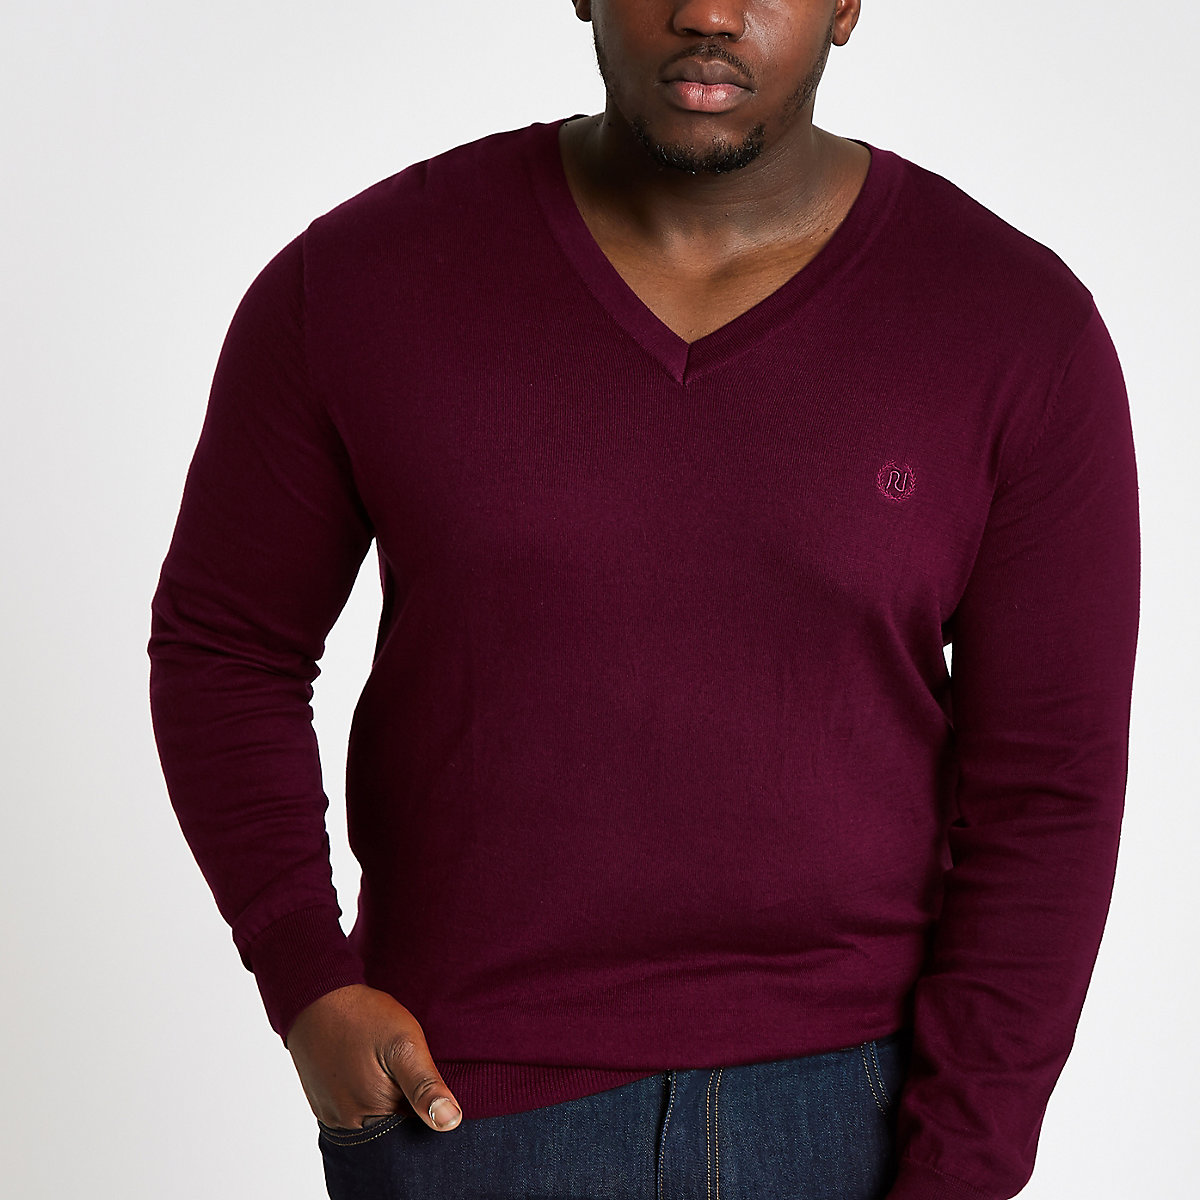 Big and Tall slim fit burgundy v neck sweater